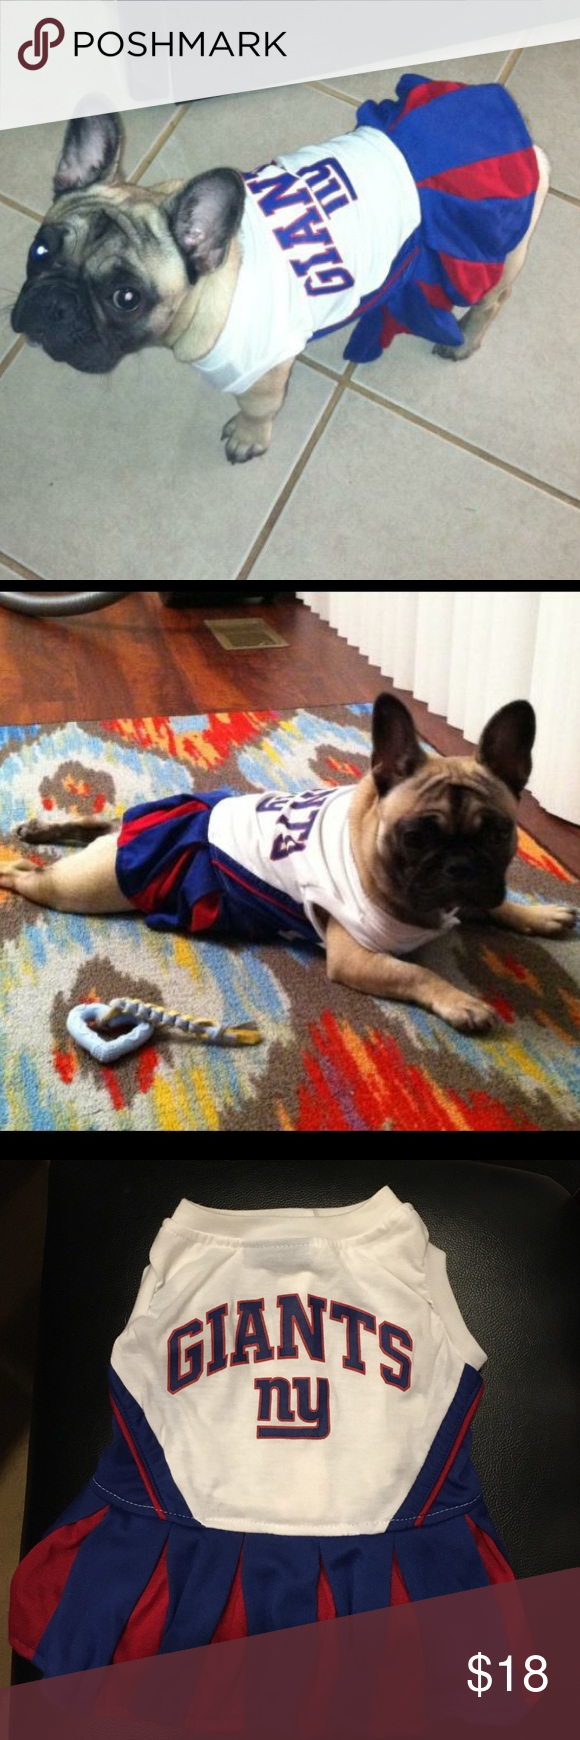 Dress up your pet game - Ny Giants Dog Dress Hello Football Fans Giants Fans What S Better Than